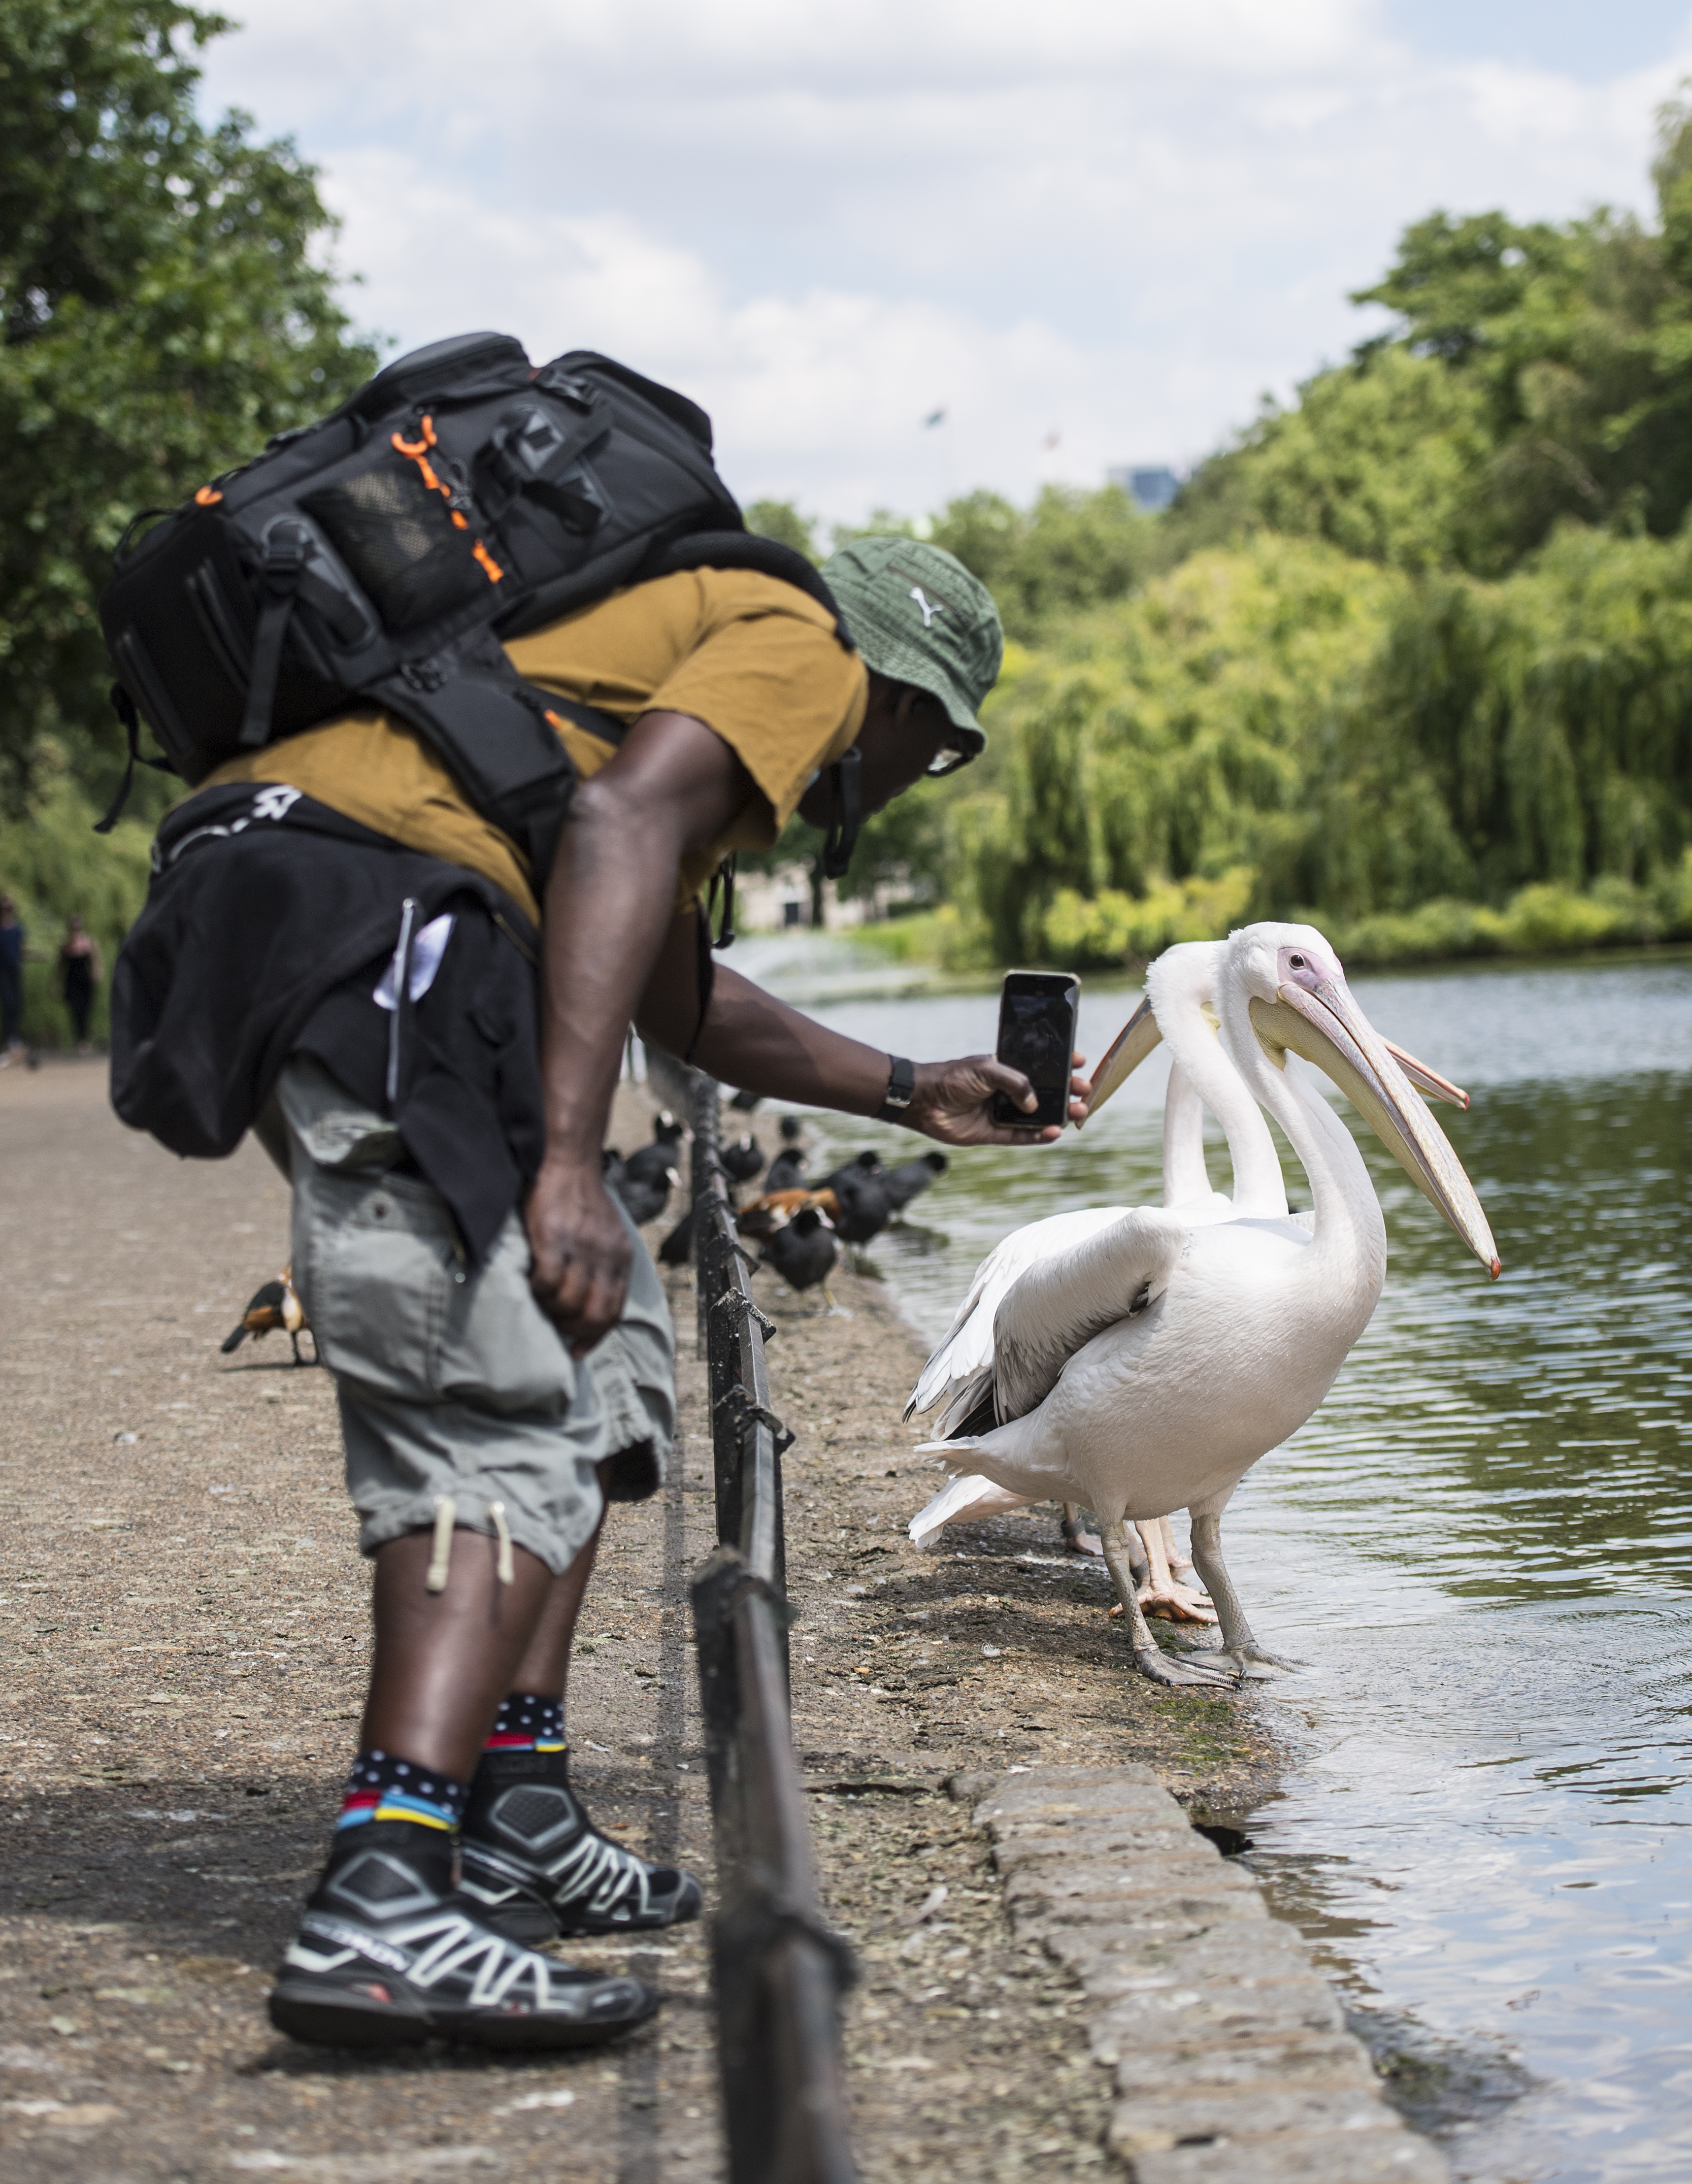 <p>A man takes pictures of the Pelicans in St James Park, London. Wednesday could be the hottest day of the year so far as parts of the UK are set to bask in 30-degree heat. Picture date: Wednesday June 16, 2021.</p>